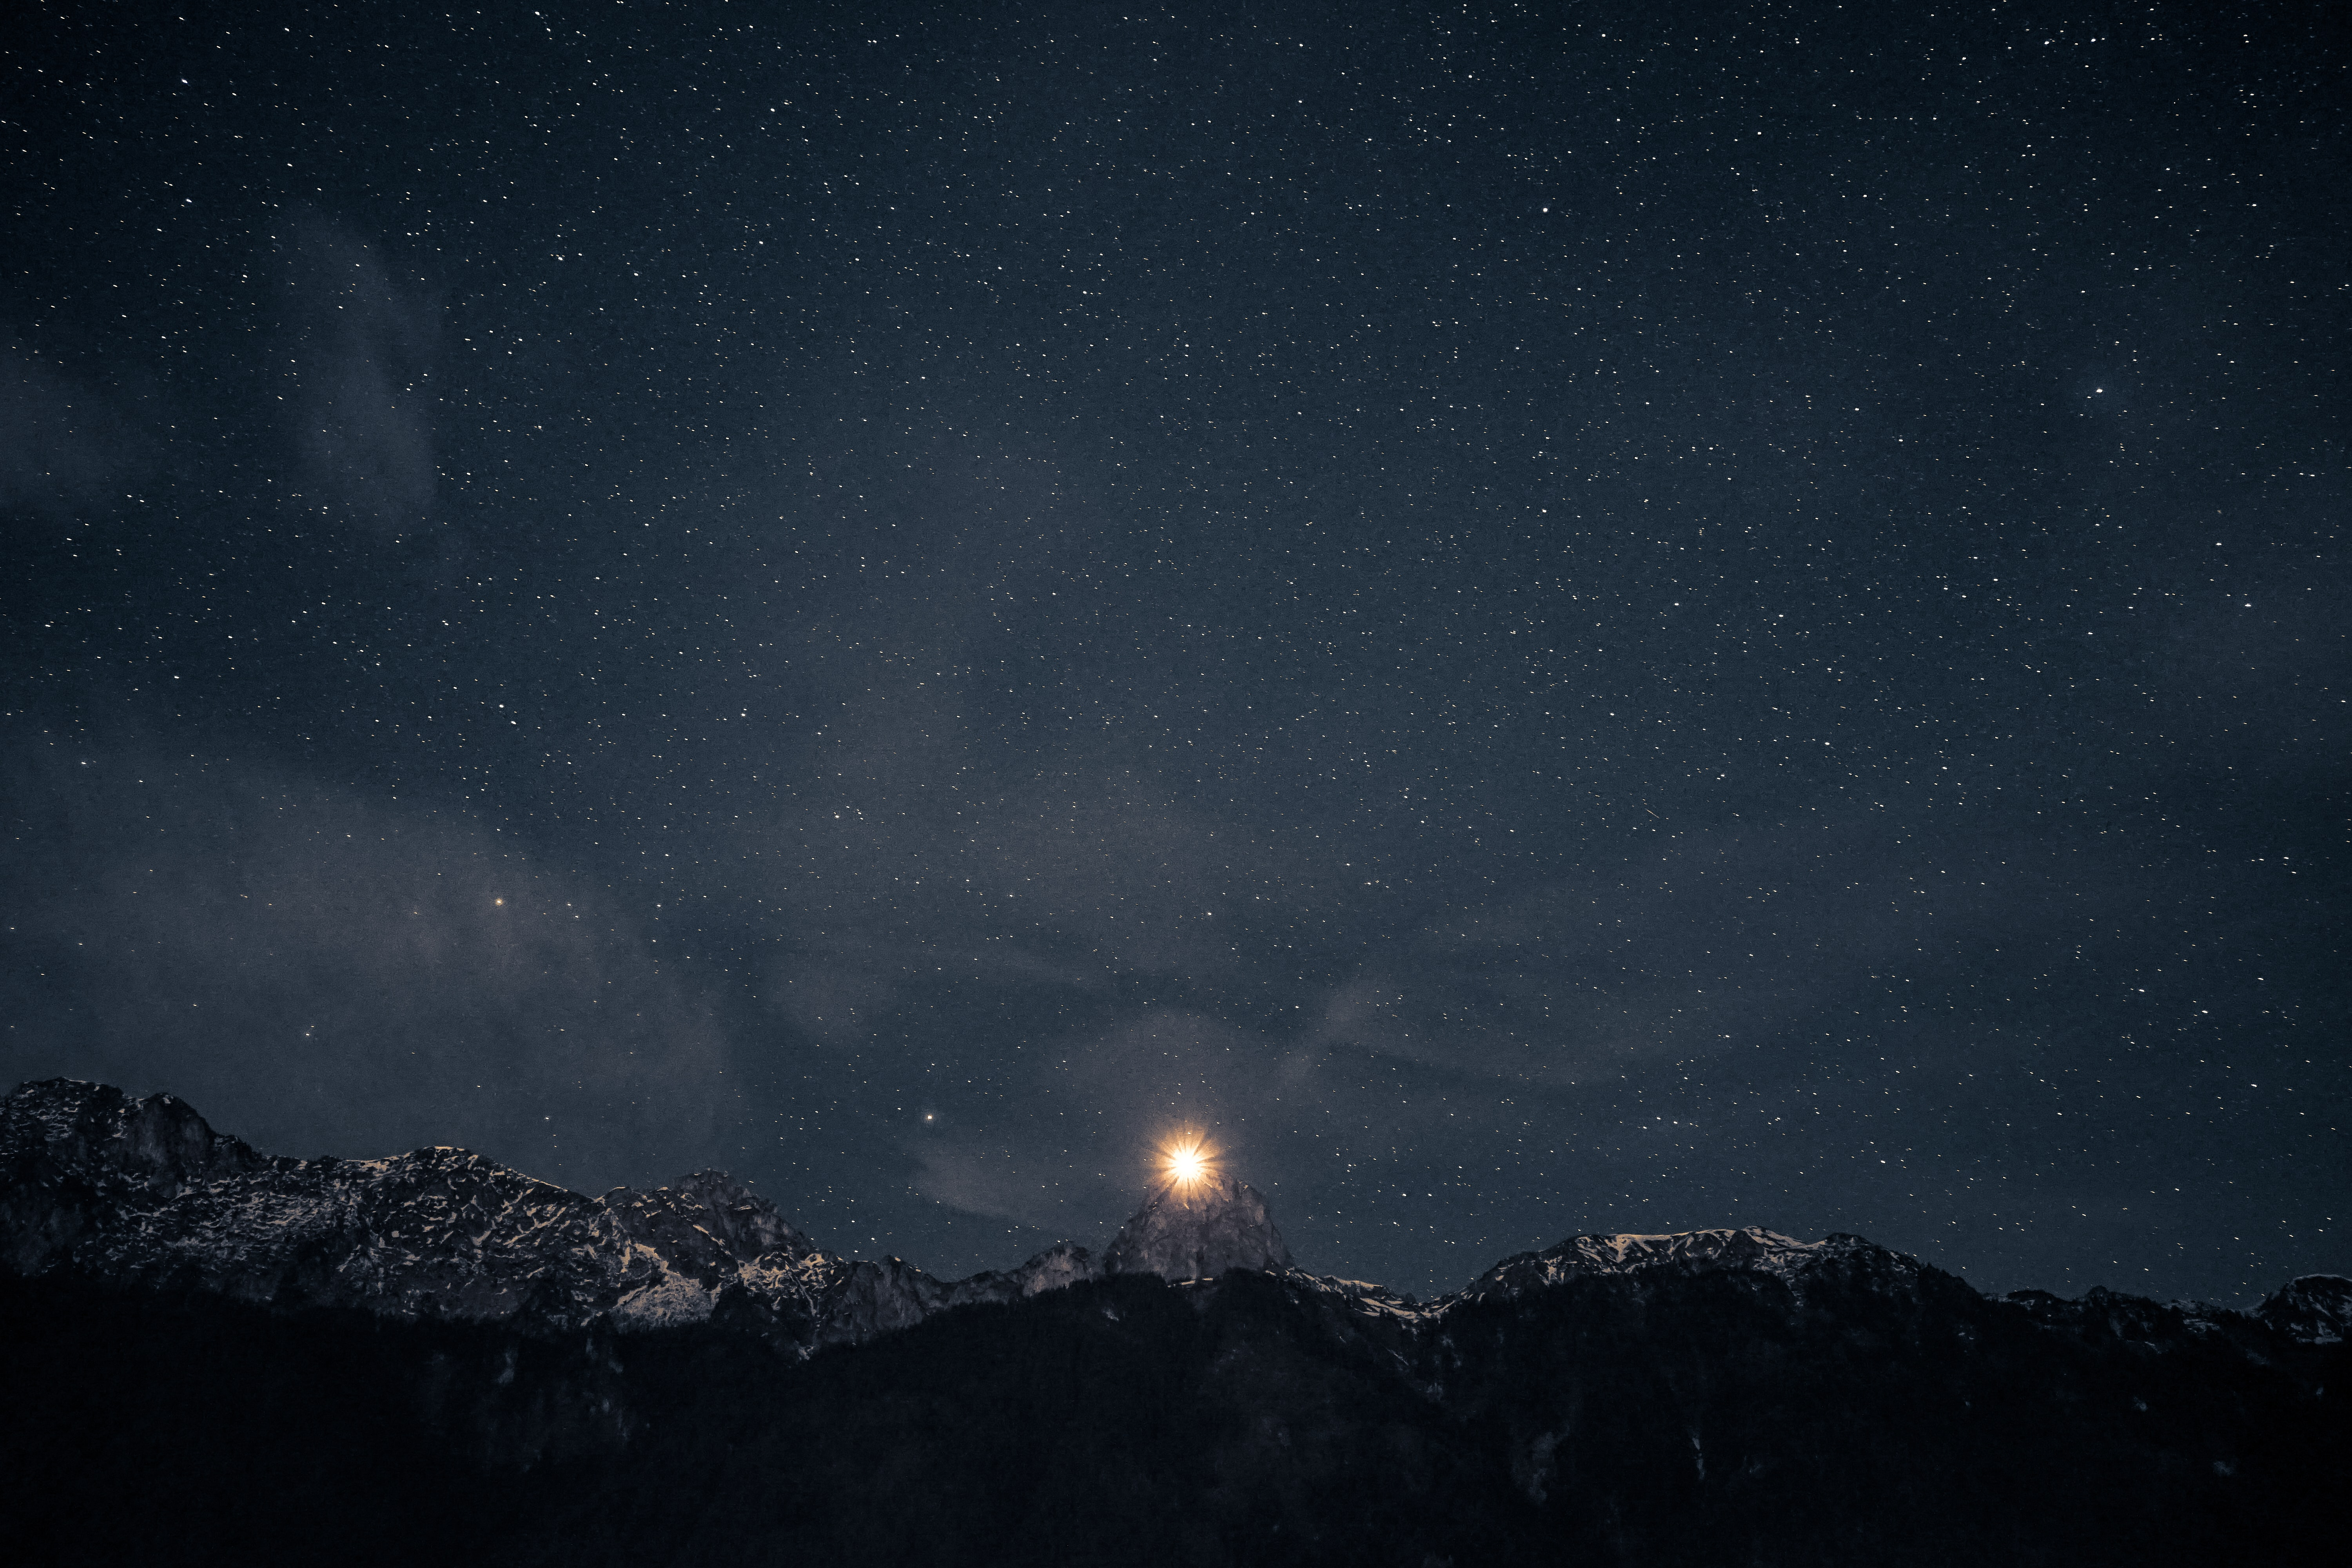 A bright star sits just above the top of a mountain during a starry night